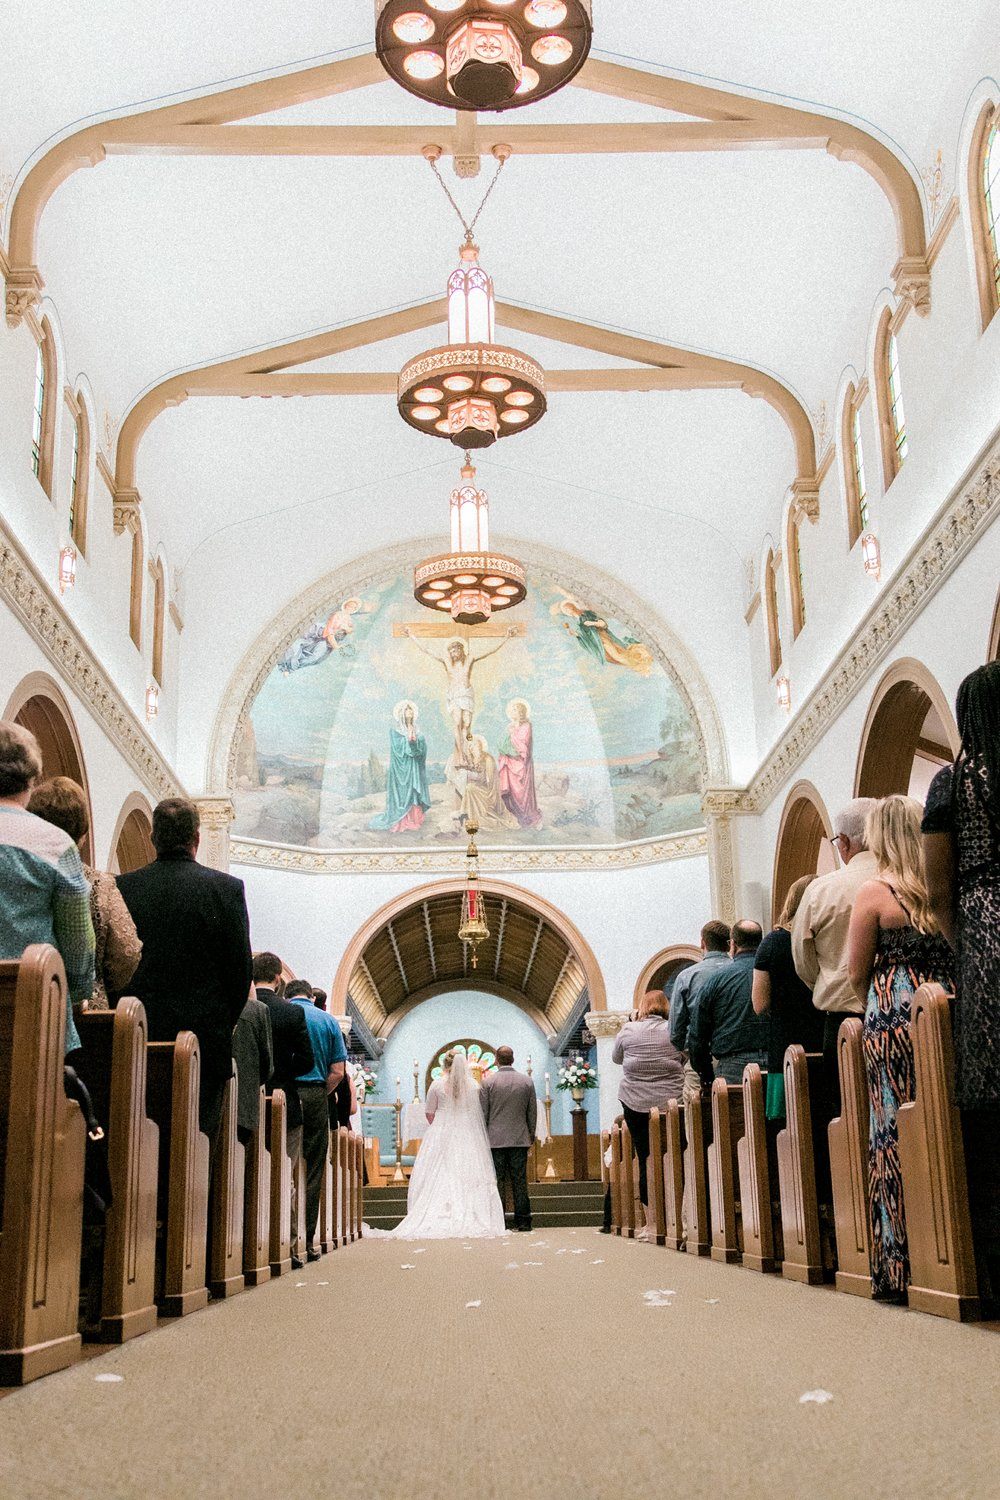 sacred-heart-catholic-church-wichita-falls-wedding-photographer-022.jpg